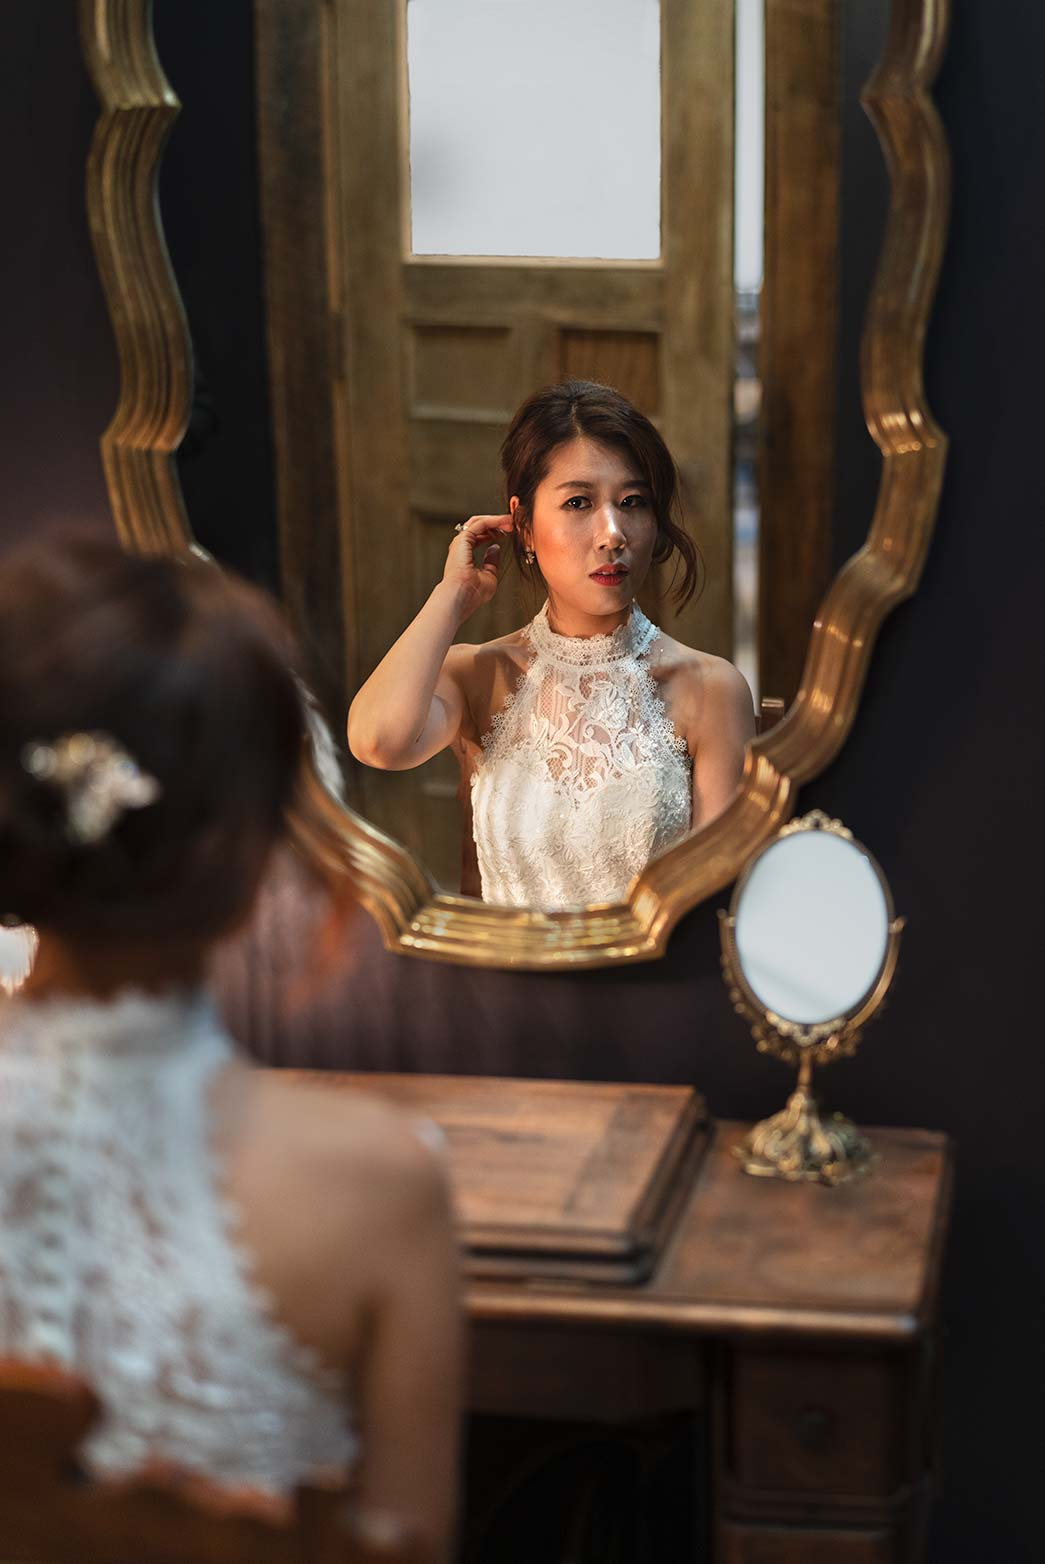 Wedding Preparation at the Mirror